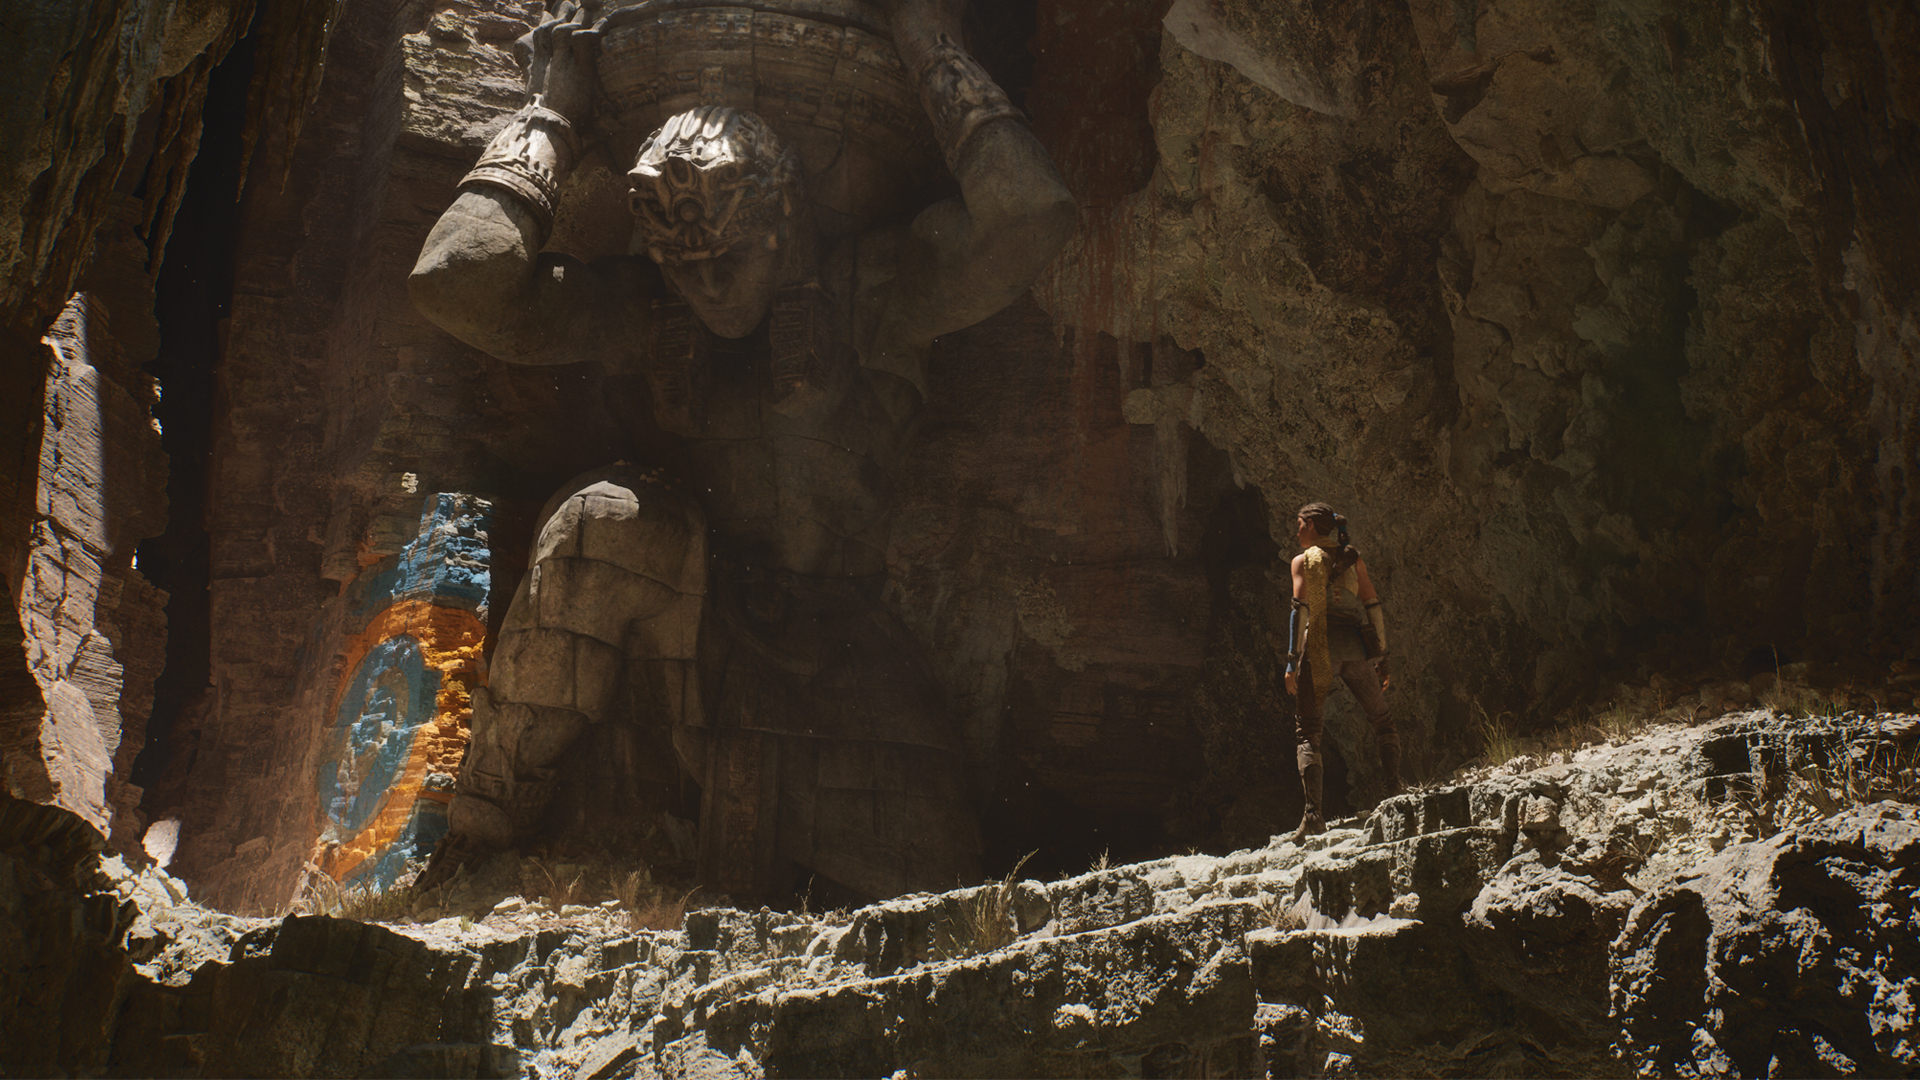 Unreal+Engine_blog_a-first-look-at-unreal-engine-5_UE5_Announcement_Feed_Large-1920x1080-8c8ab609059186399d92ca5dc8a748e62880e0e7